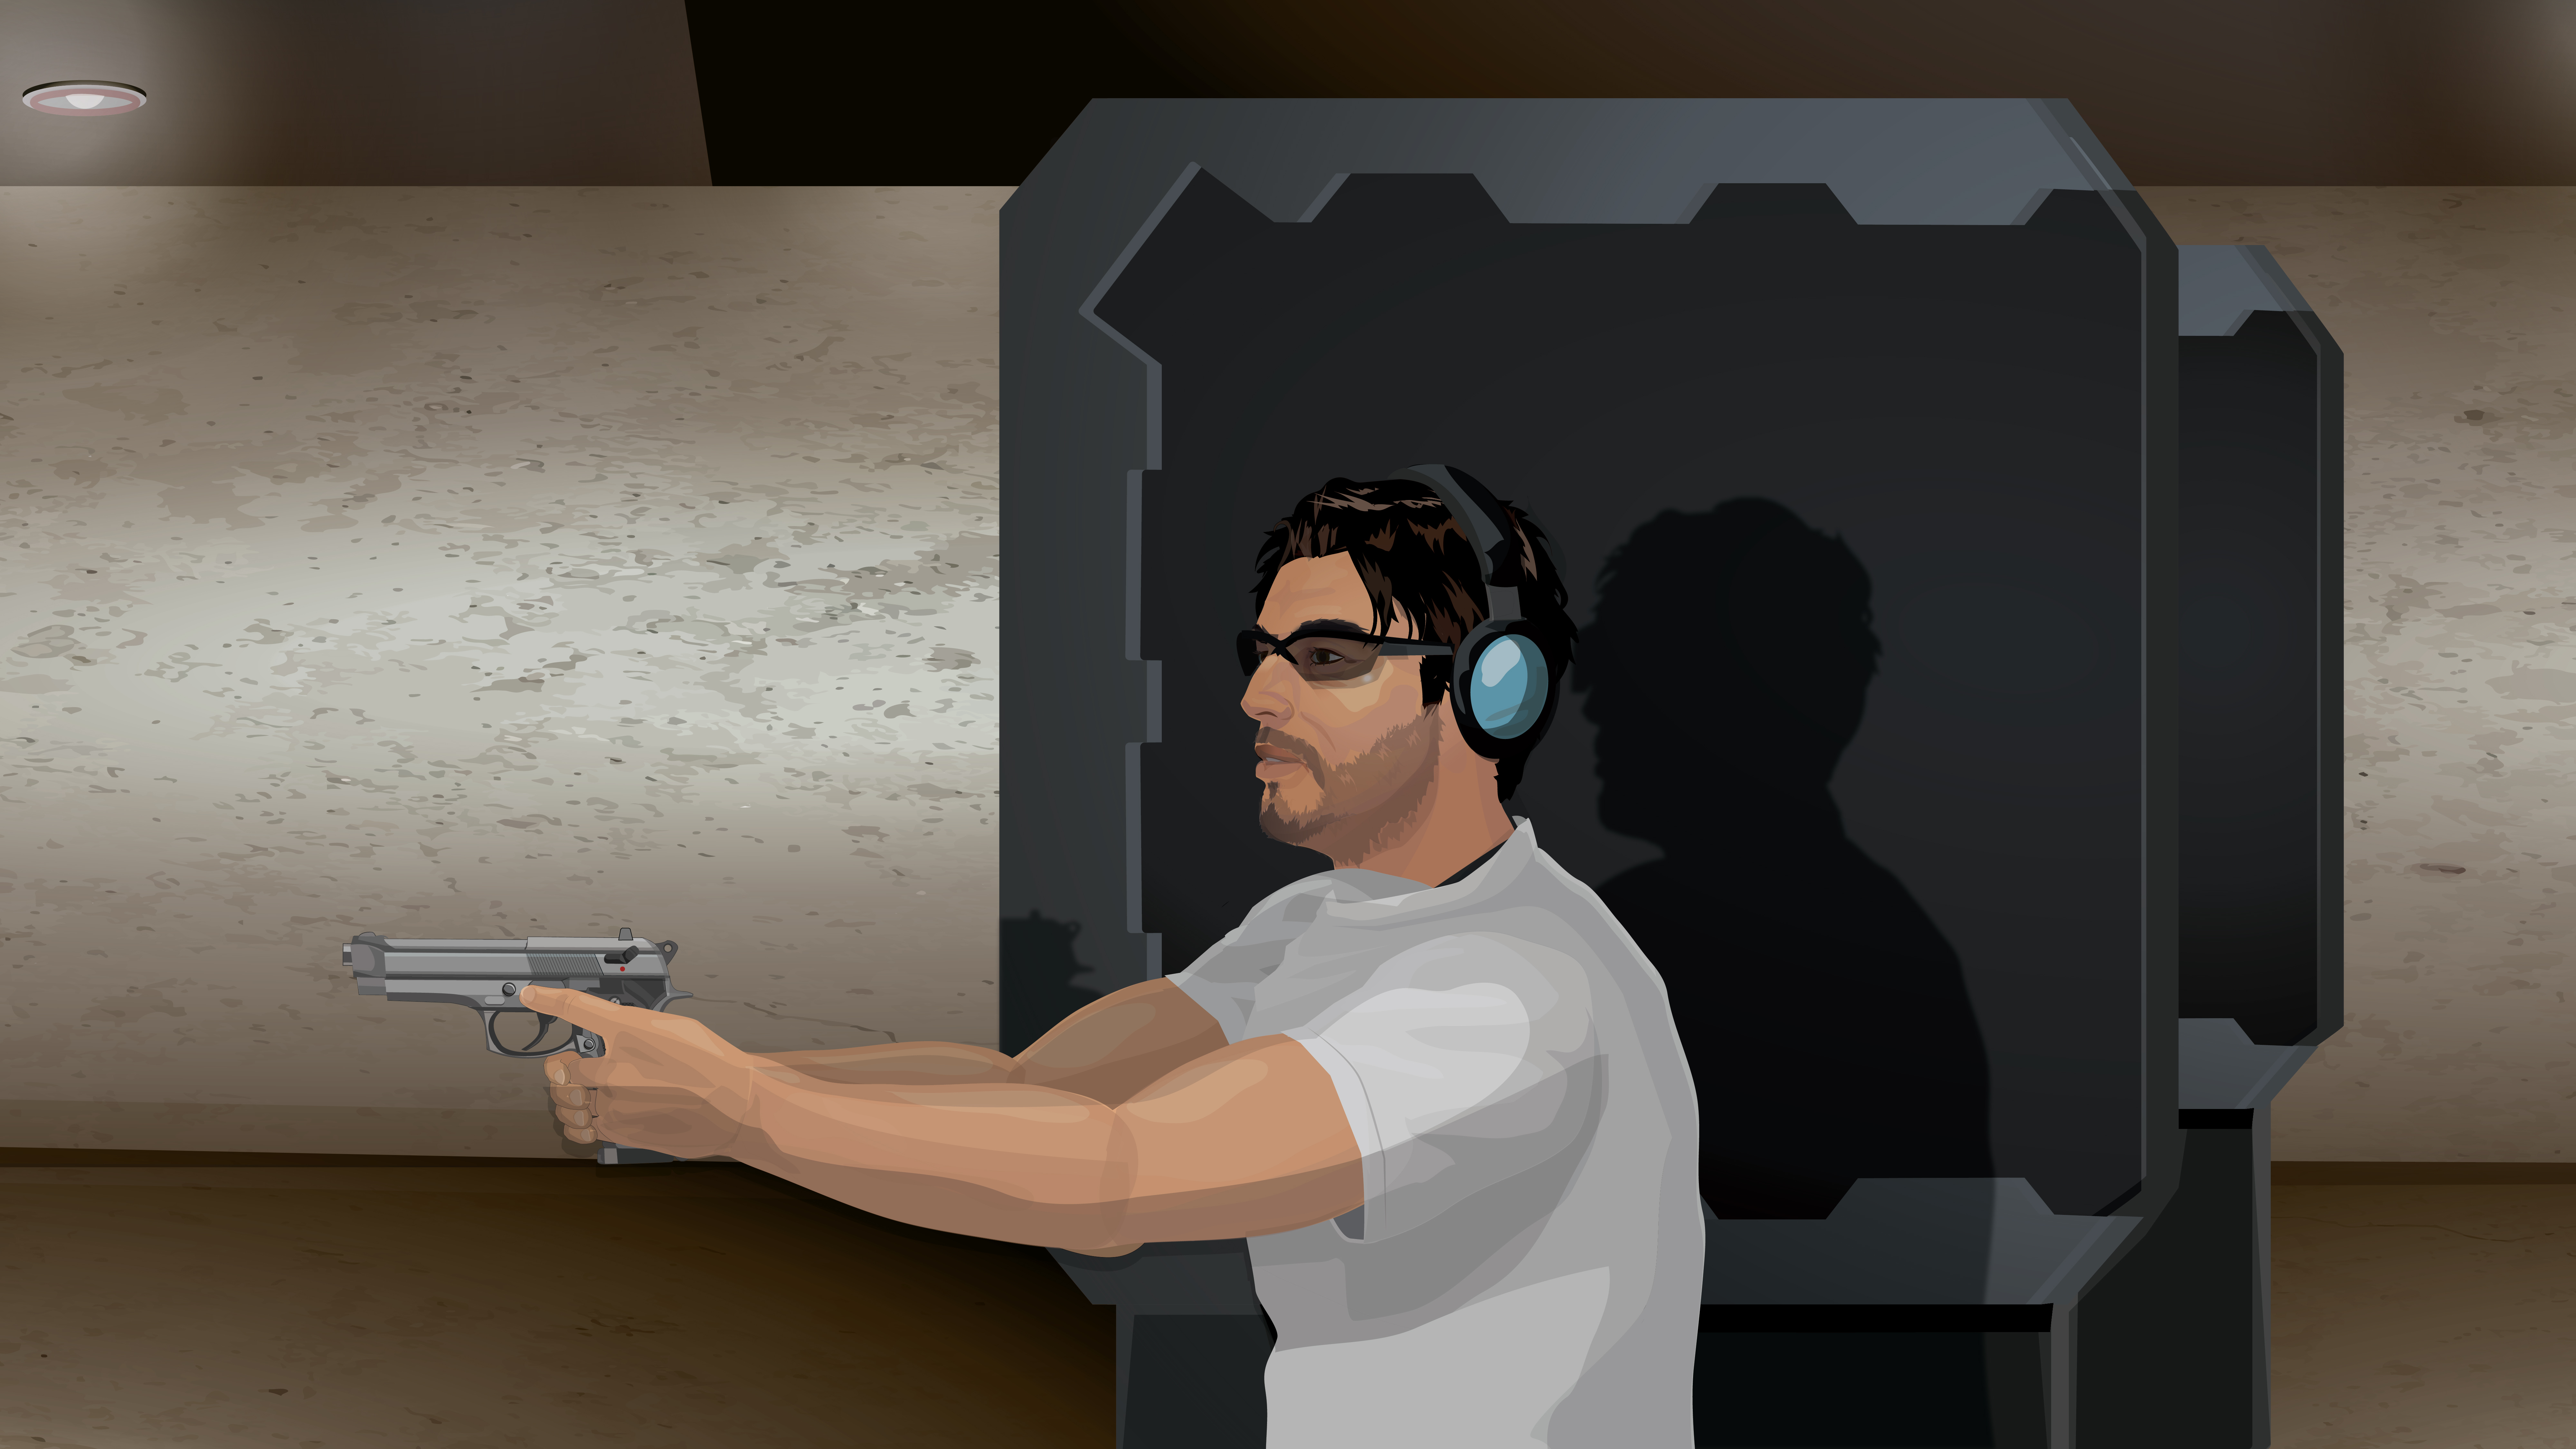 Illustration of a man in a one handed handgun stance at a shooting range.